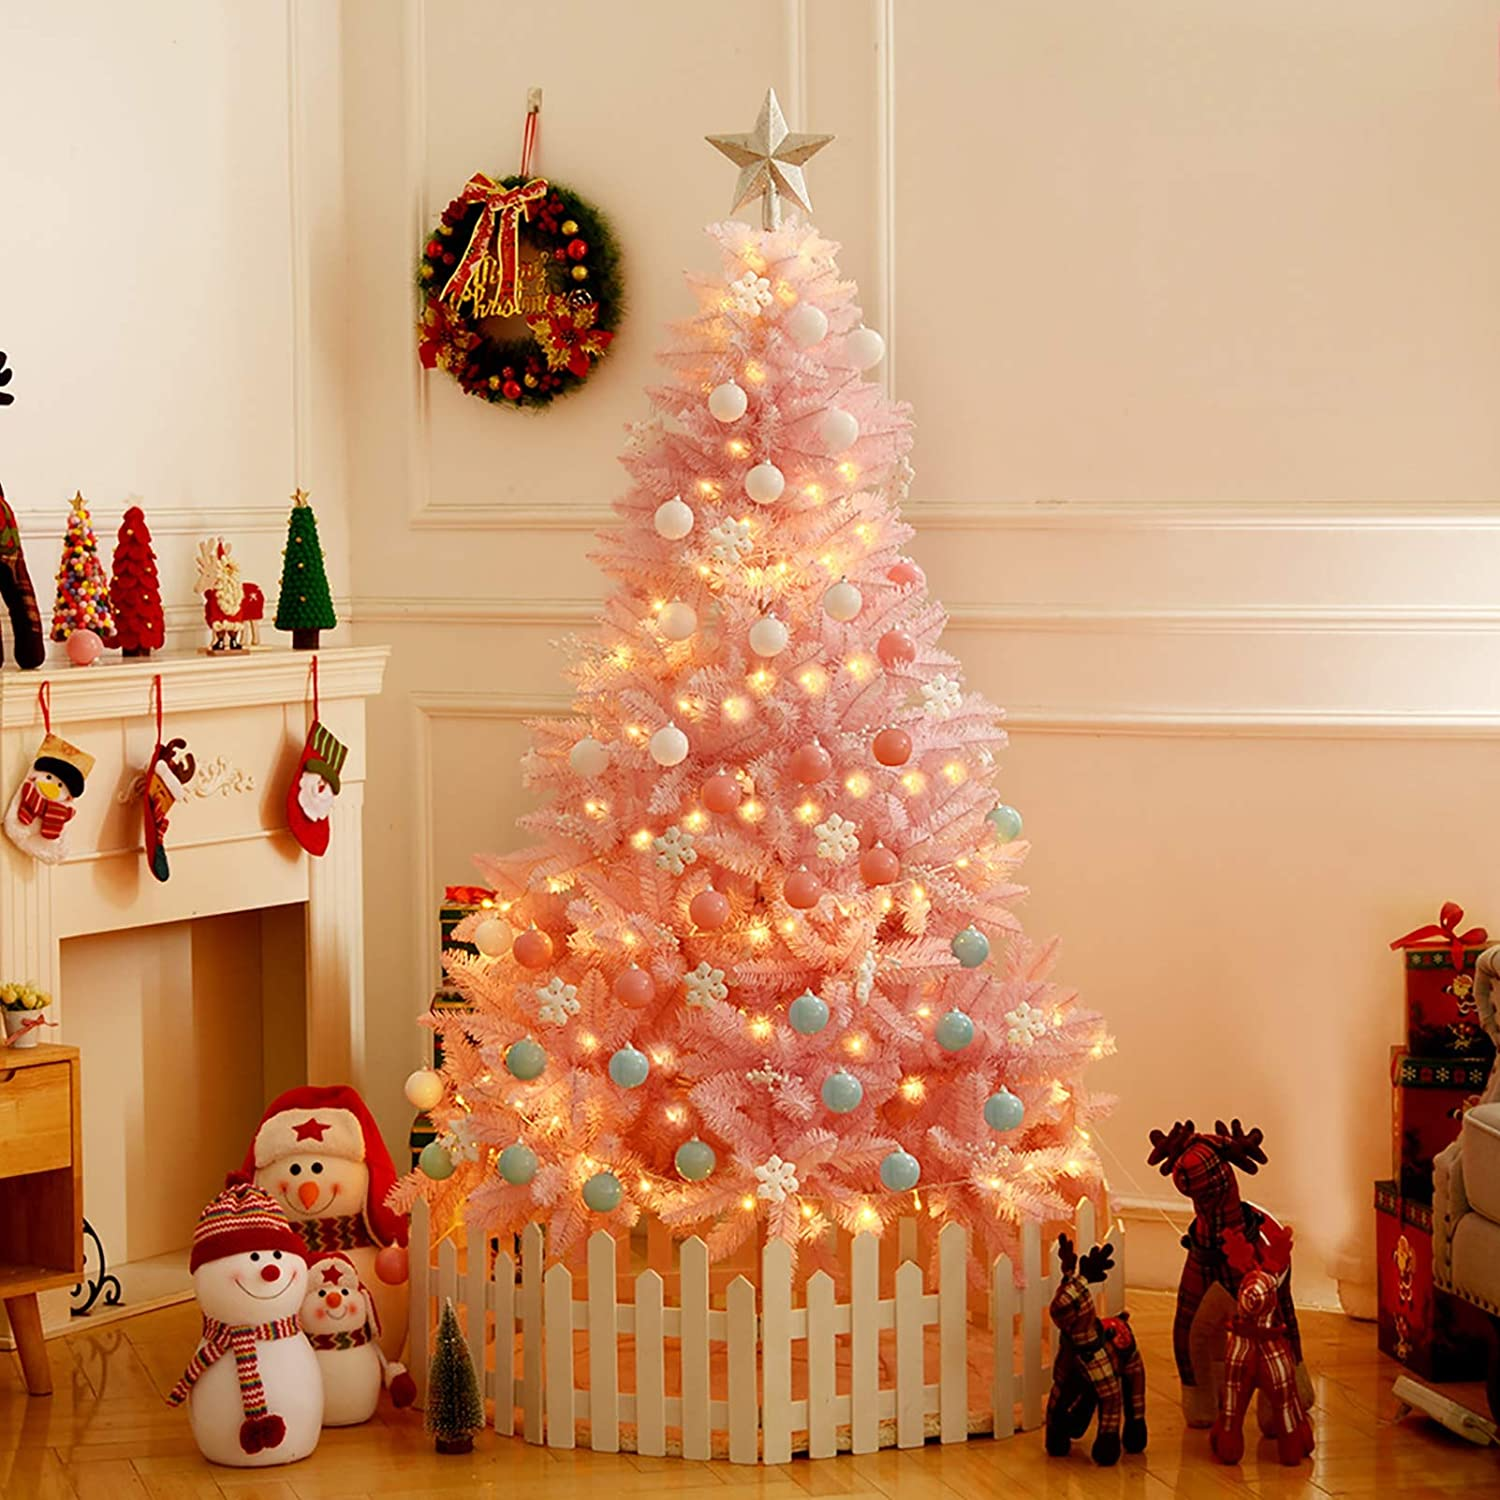 ZEIYUQI Artificial Christmas Tree with LED Lights Including Ornaments Fashion Pink PVC Luxury Christmas Tree - Holiday Home Decor,Pink,1.2M